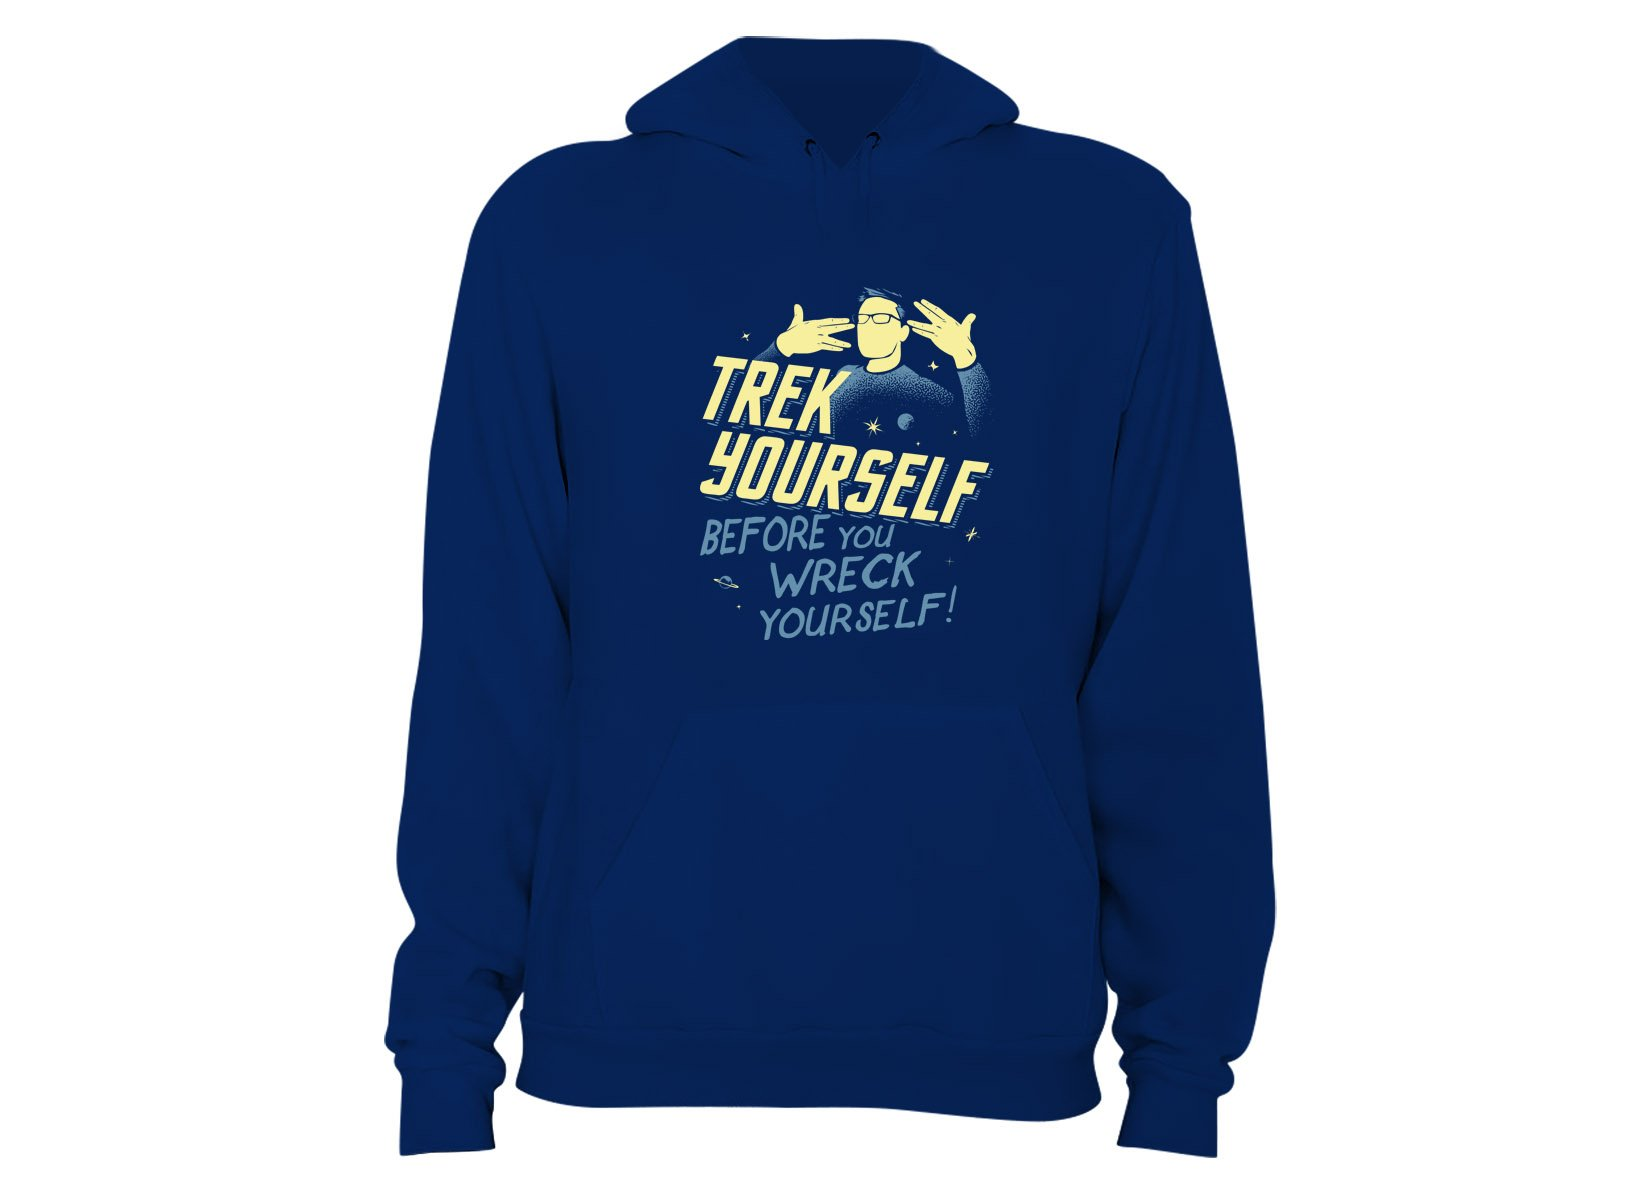 Trek Yourself Before You Wreck Yourself on Hoodie